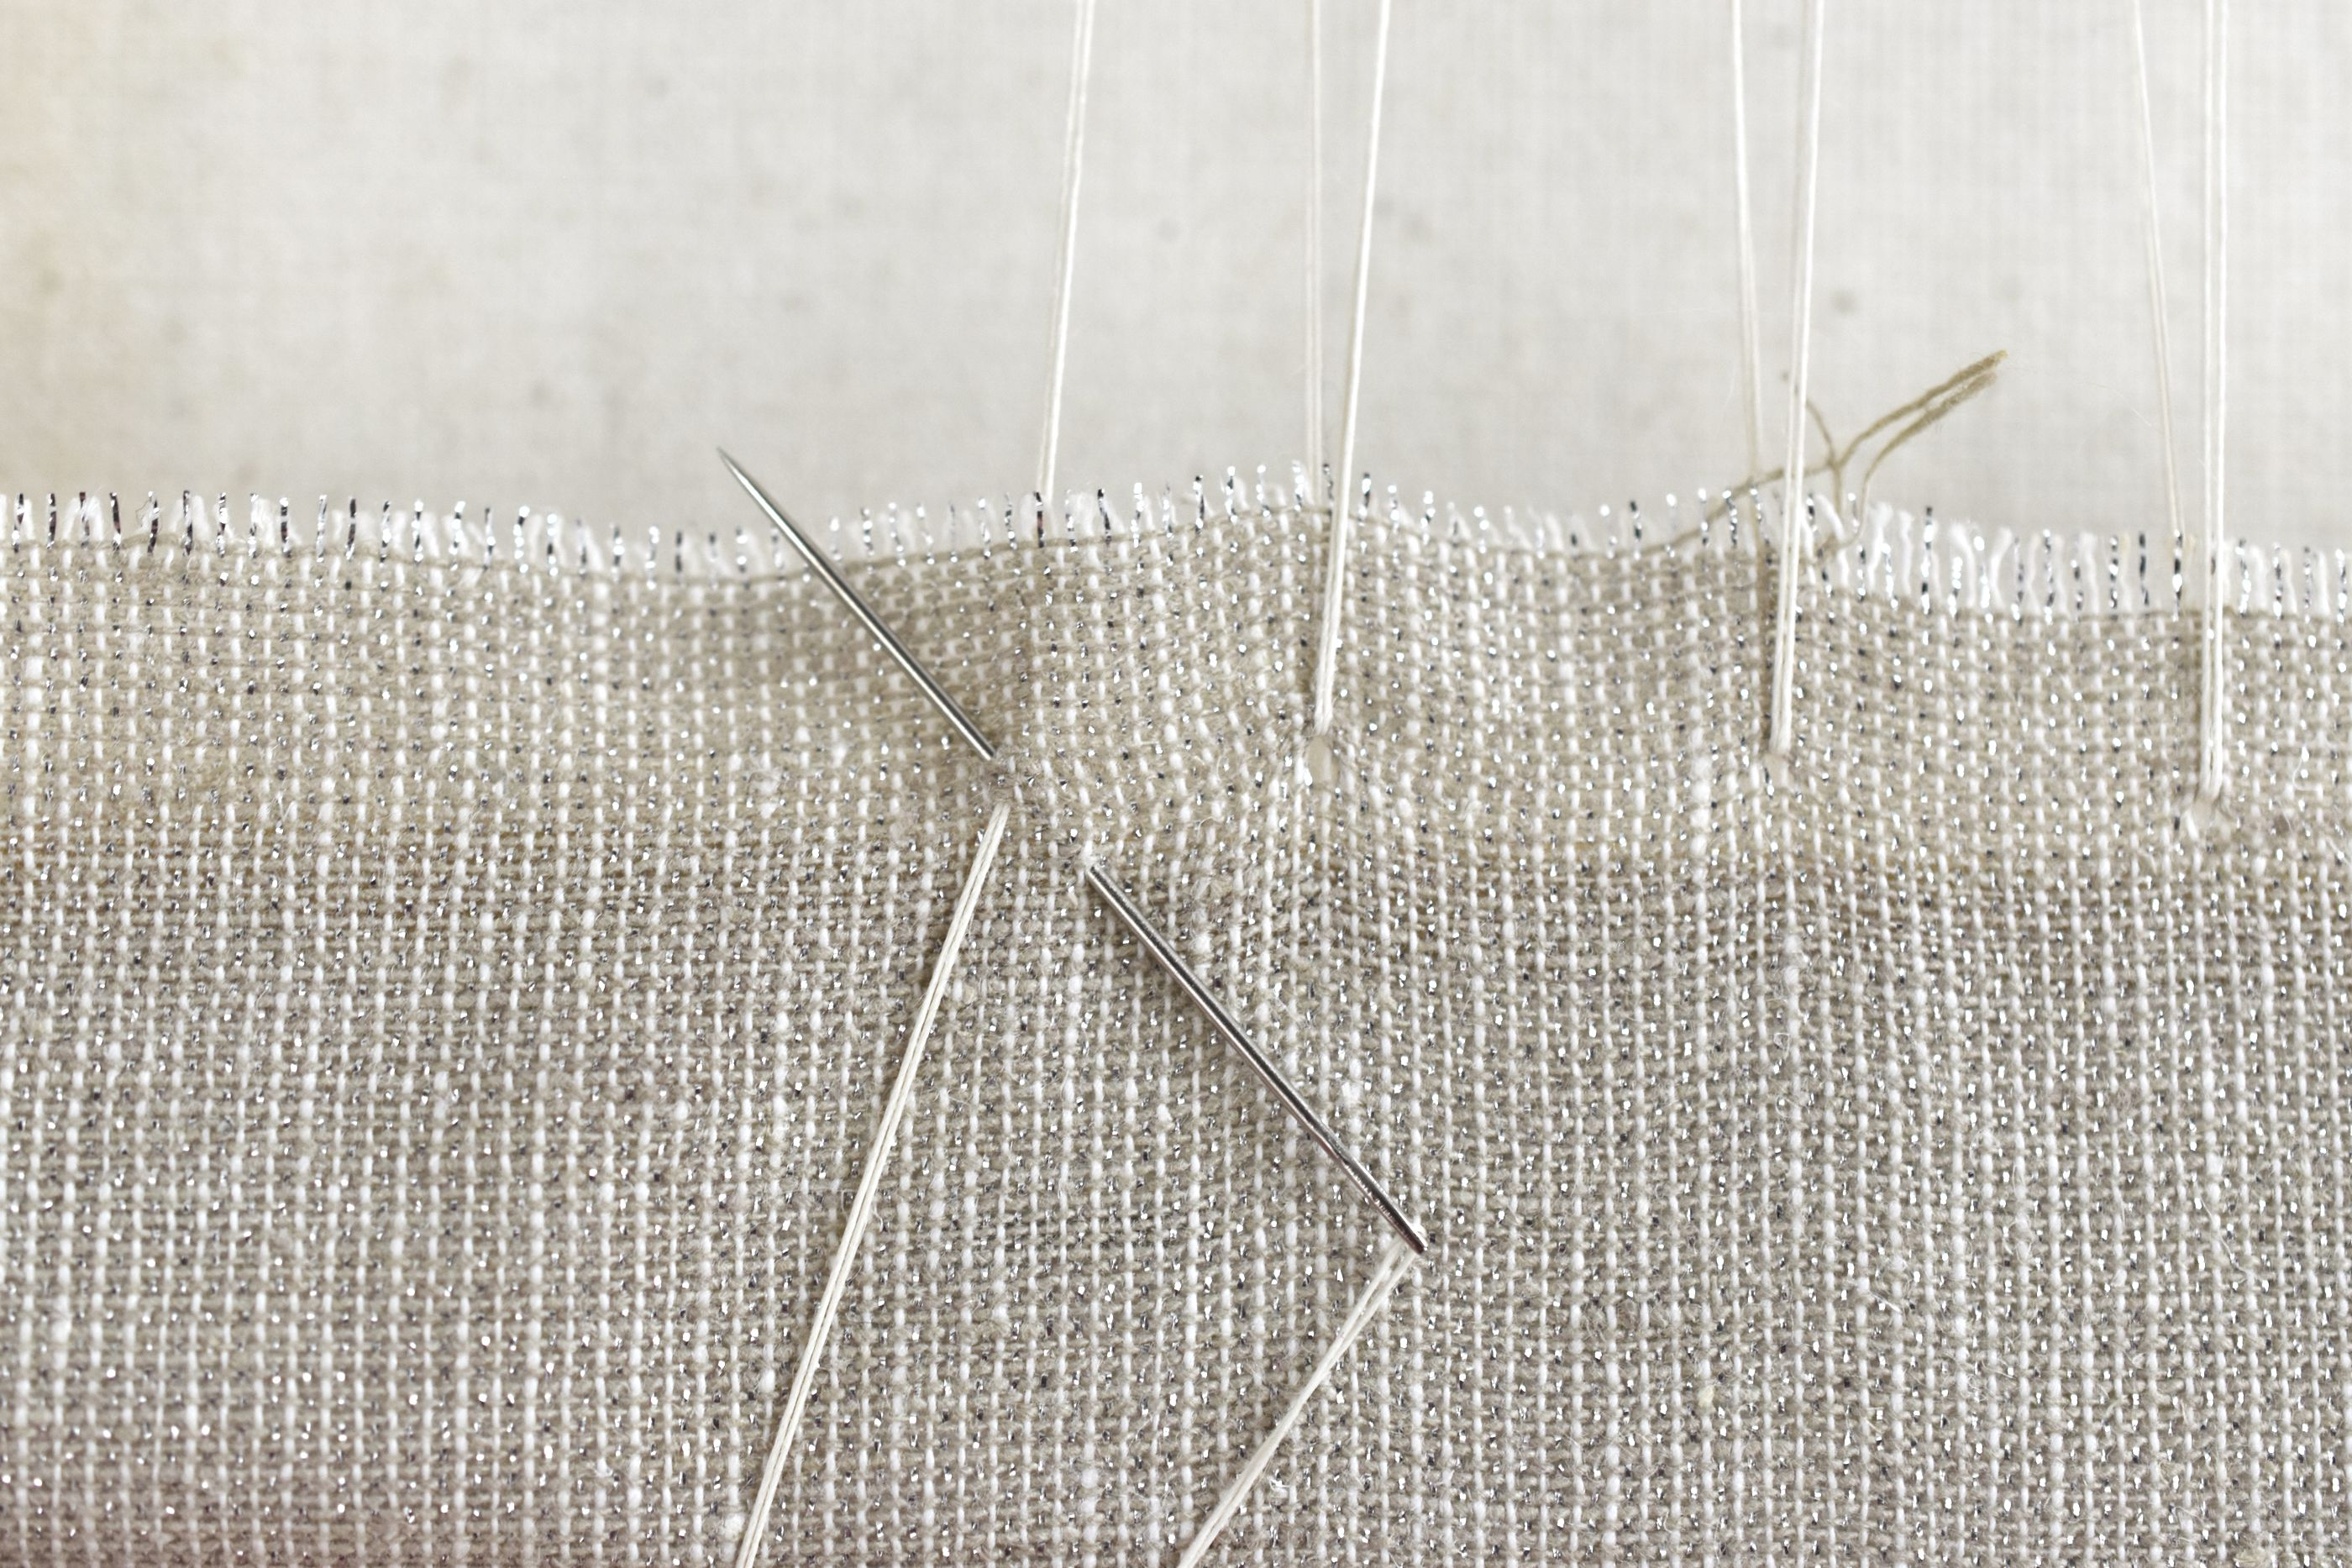 Secure Thread Ends With an Extra Stitch